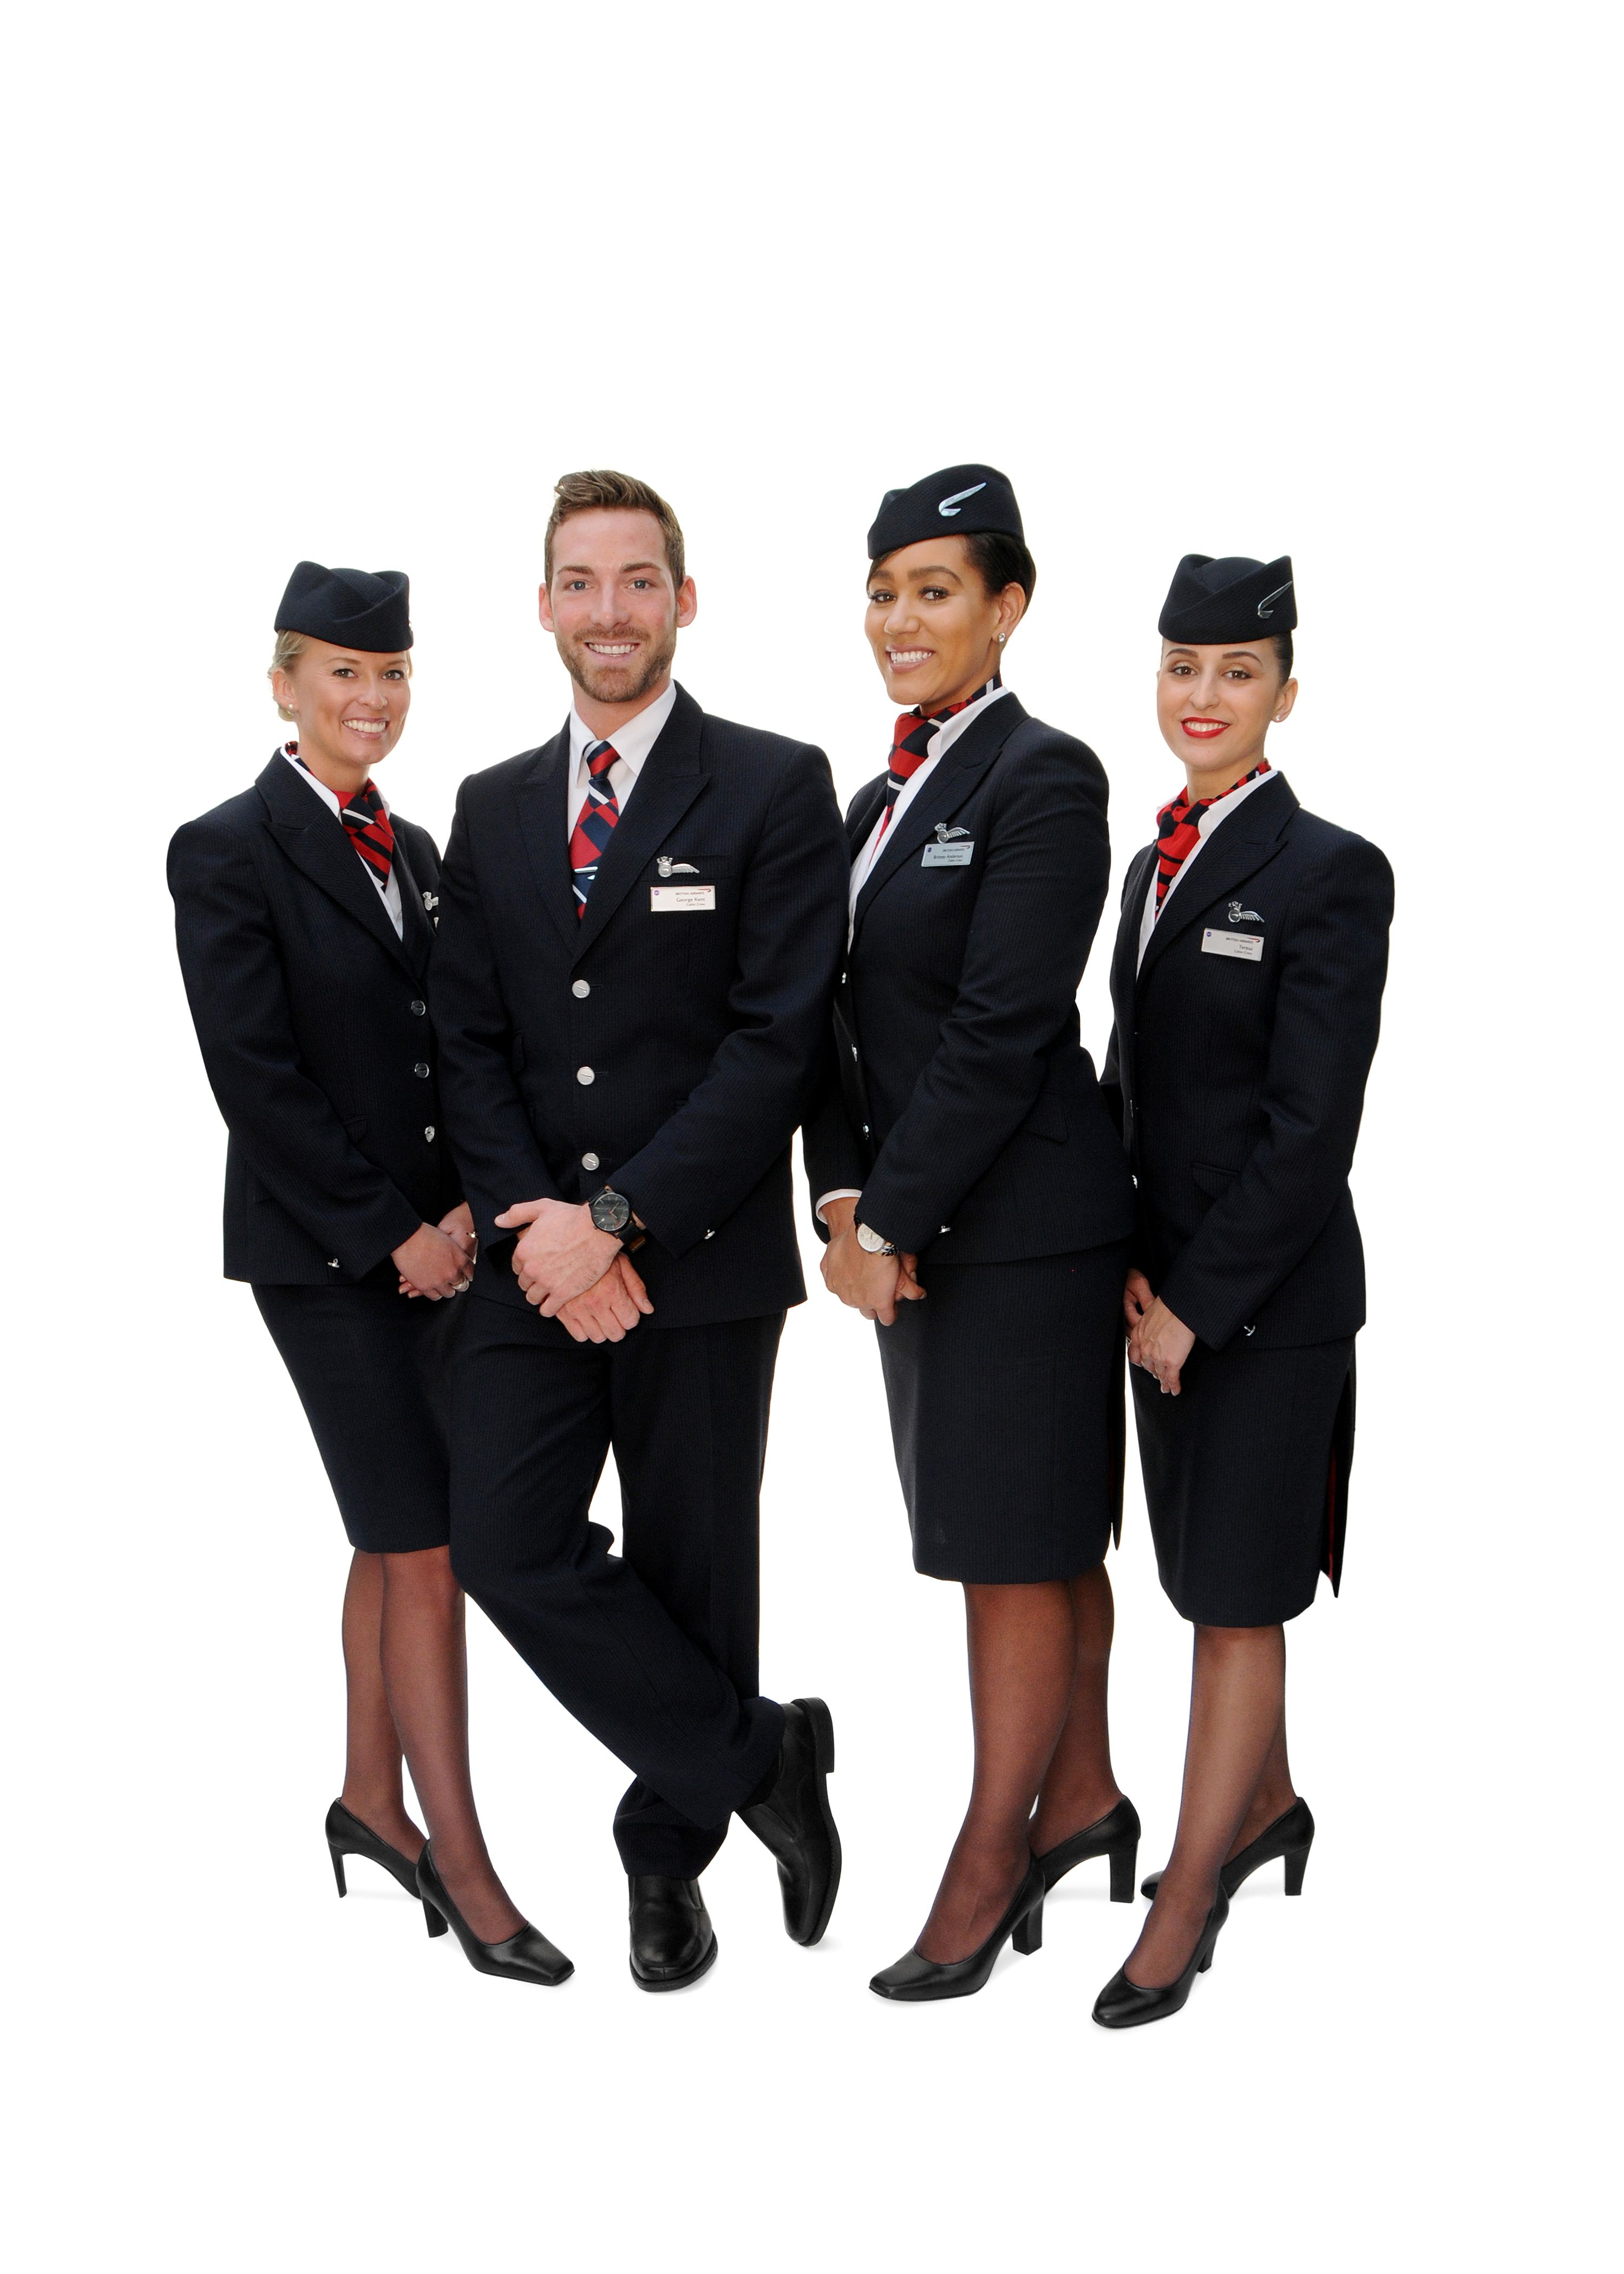 Pin by LDPaterson on Cabin Crew Uniforms  in 2019 | Airline